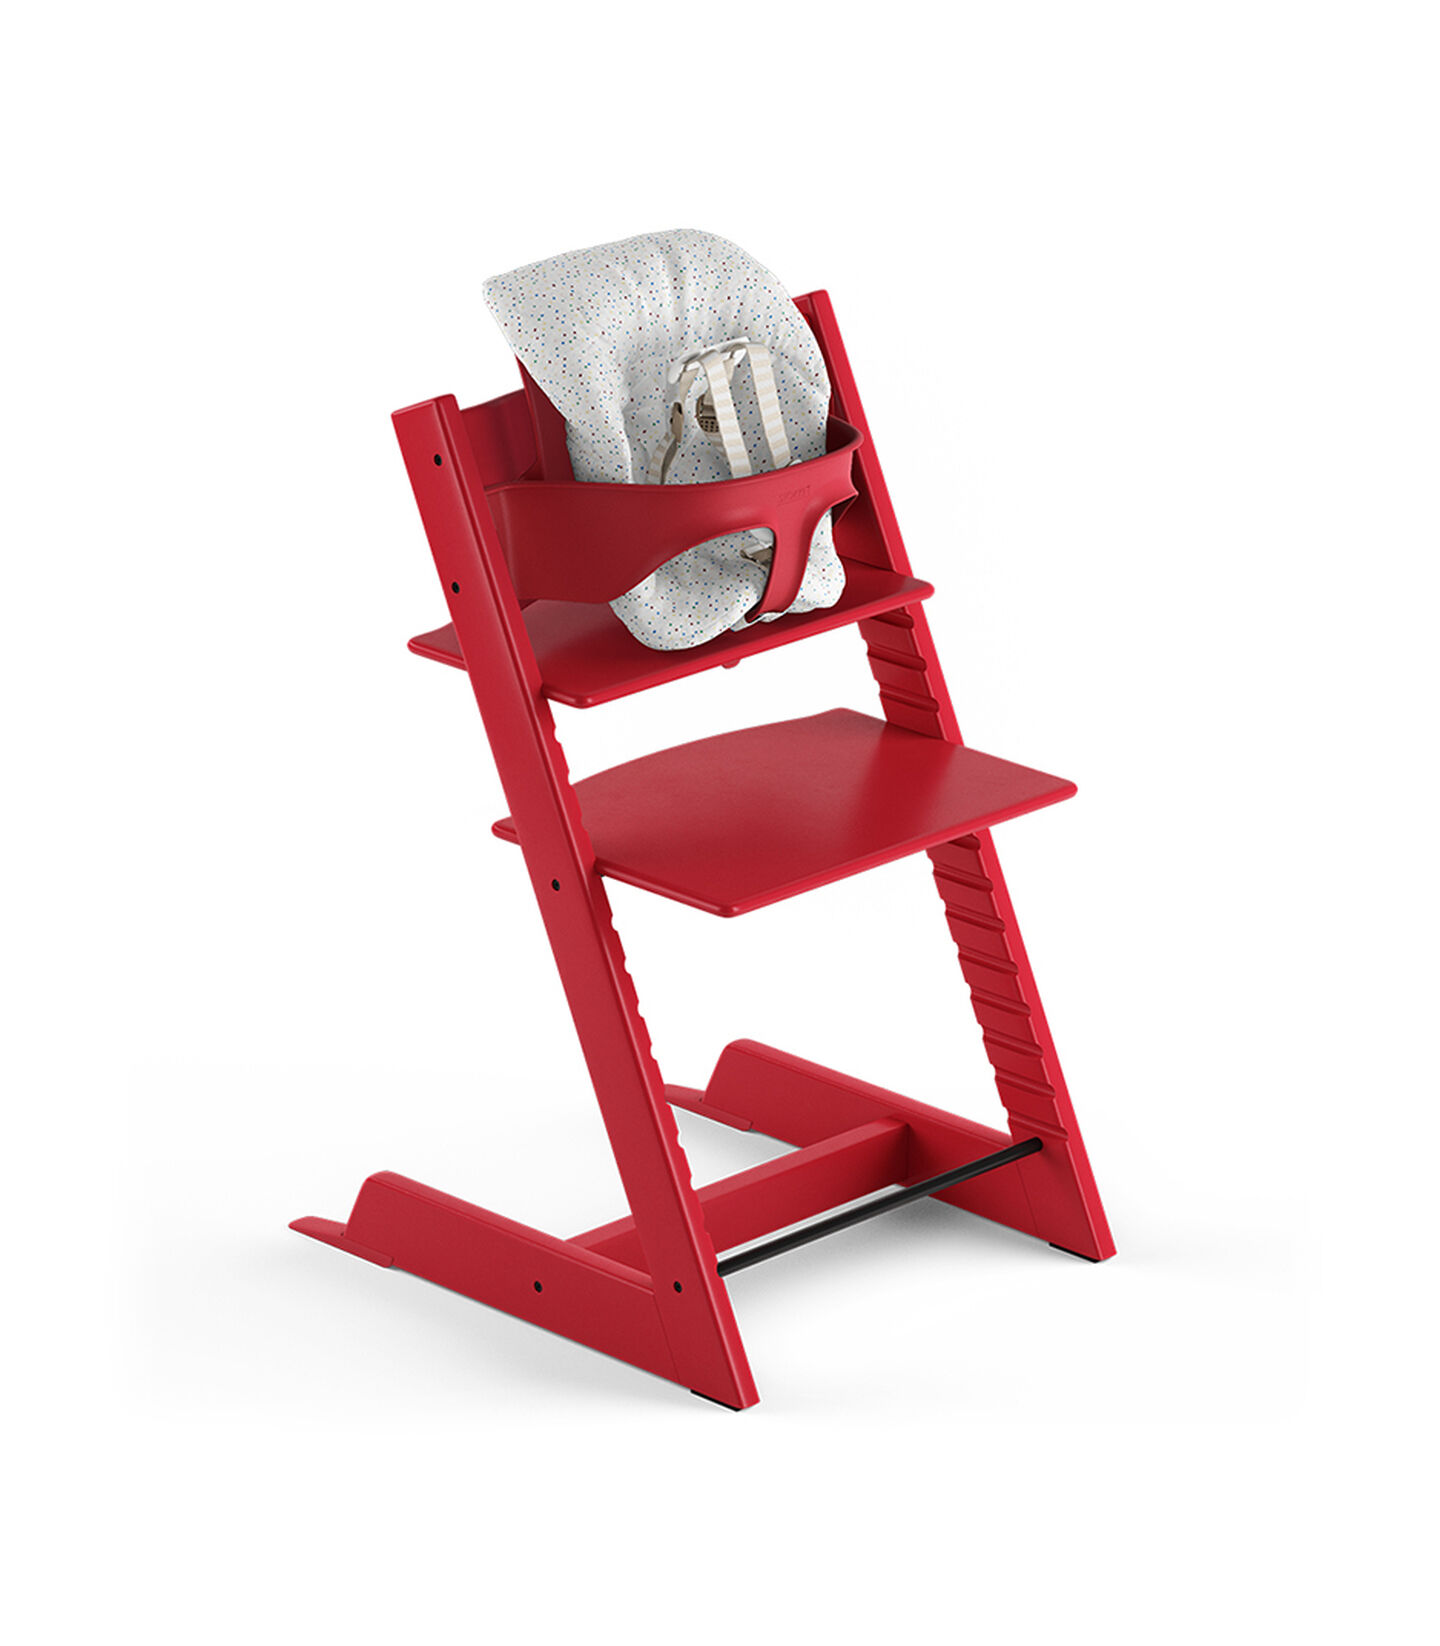 Tripp Trapp® Red, Beech. With Tripp Trapp® Baby Set and Baby Cushion Soft Sprinkle. US version with Harness.